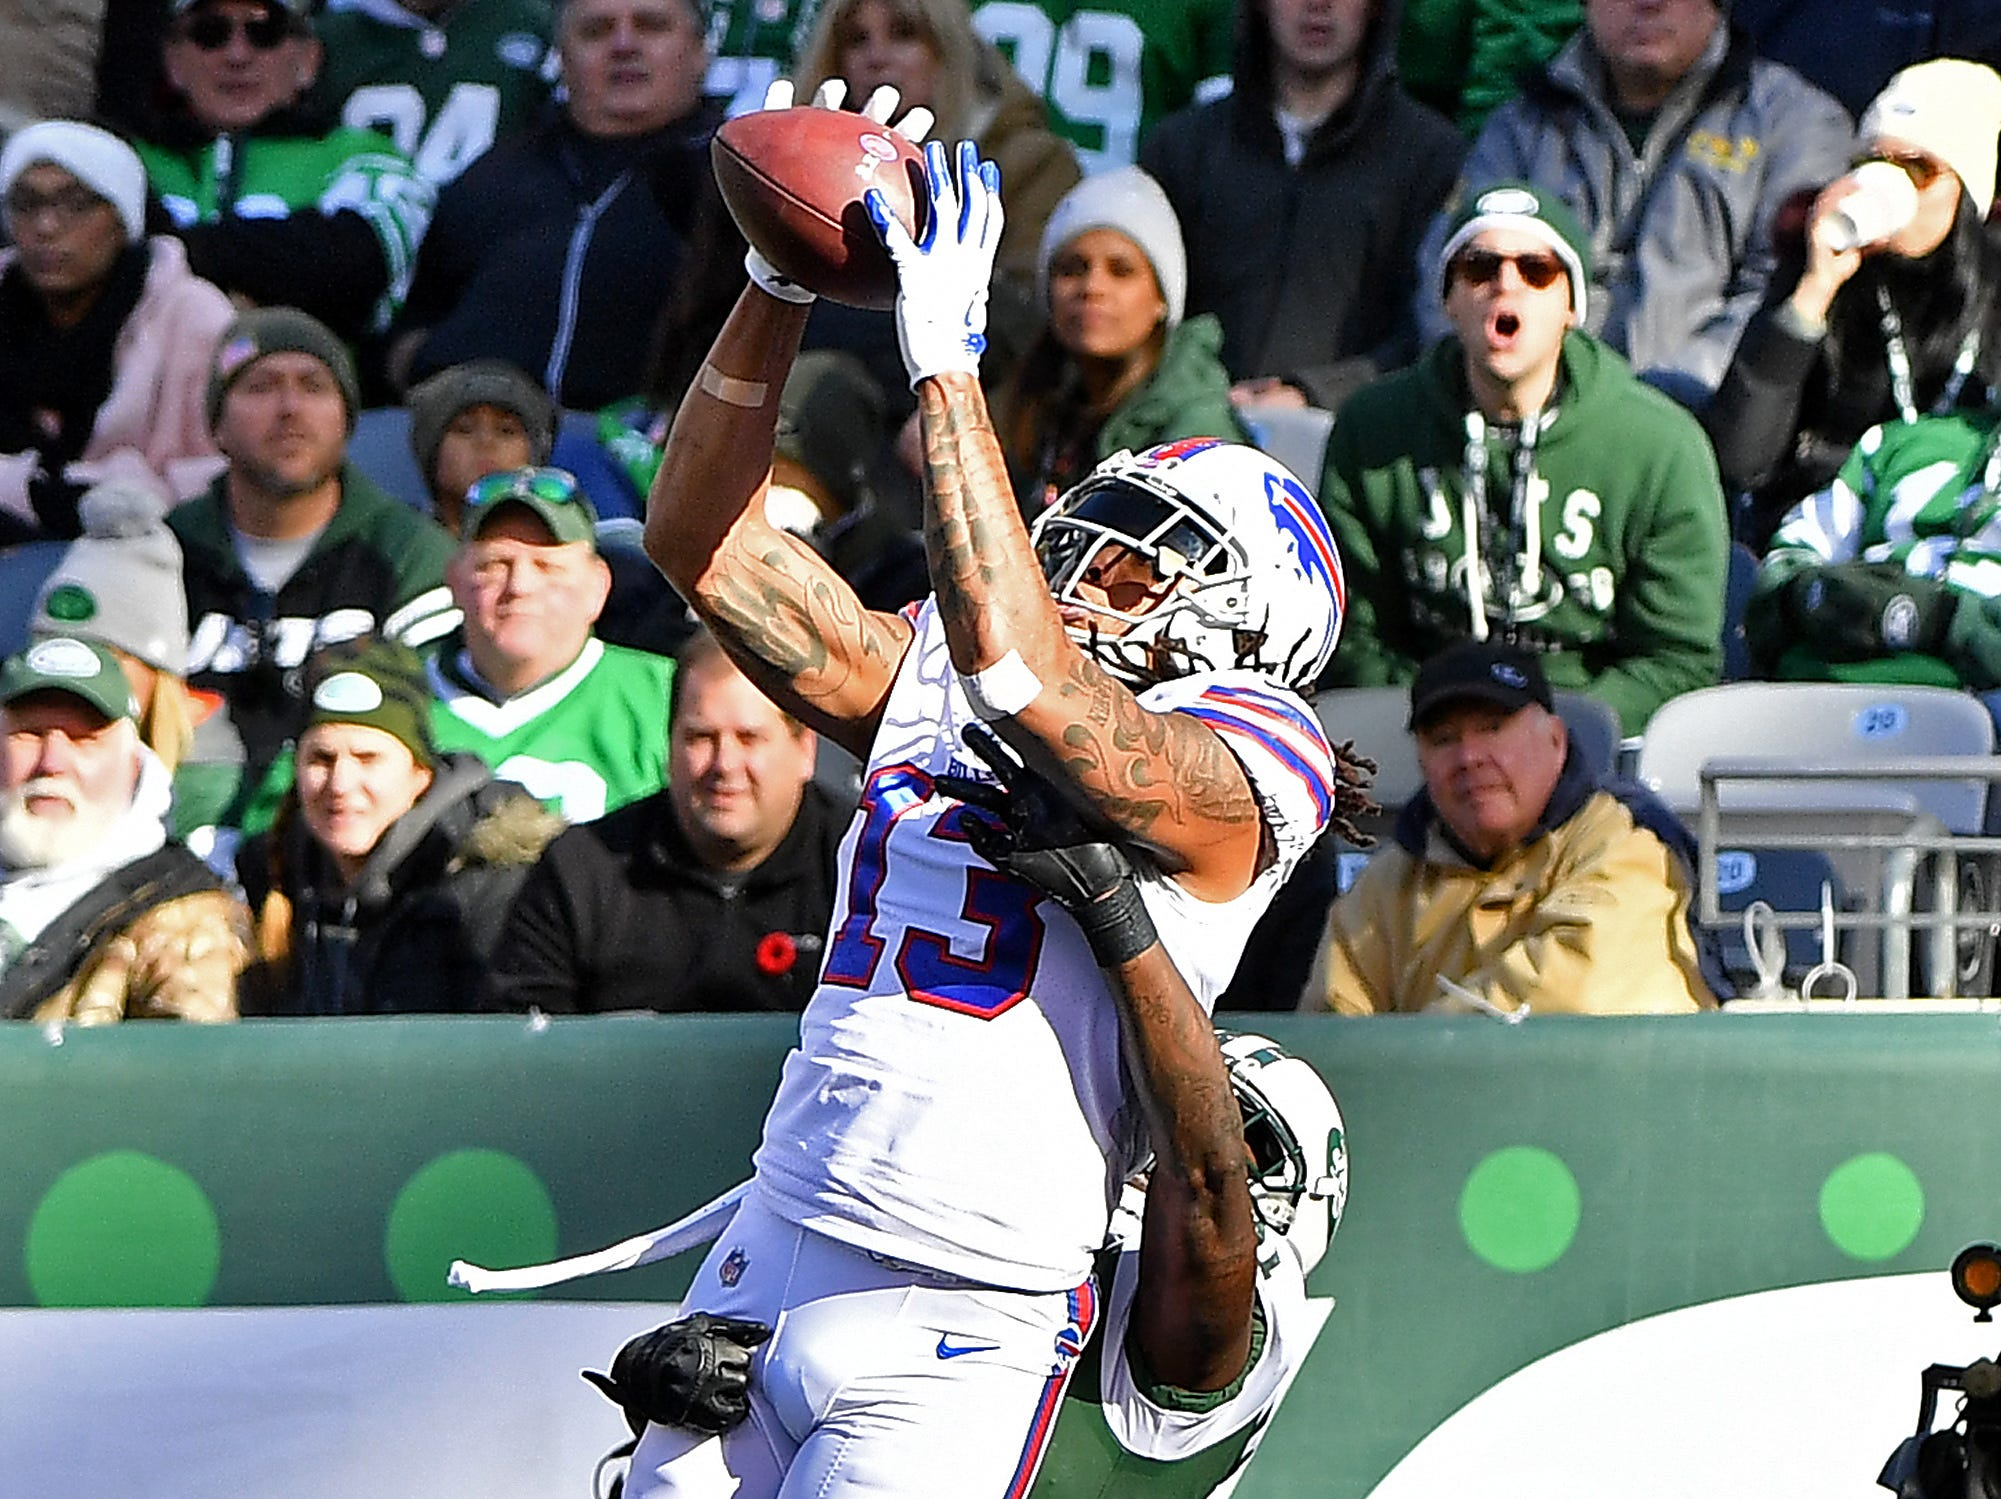 EAST RUTHERFORD, NEW JERSEY - NOVEMBER 11: Kelvin Benjamin #13 of the Buffalo Bills attempts to catch a pass under pressure from Morris Claiborne #21 of the New York Jets during the first quarter at MetLife Stadium on November 11, 2018 in East Rutherford, New Jersey. (Photo by Mark Brown/Getty Images)